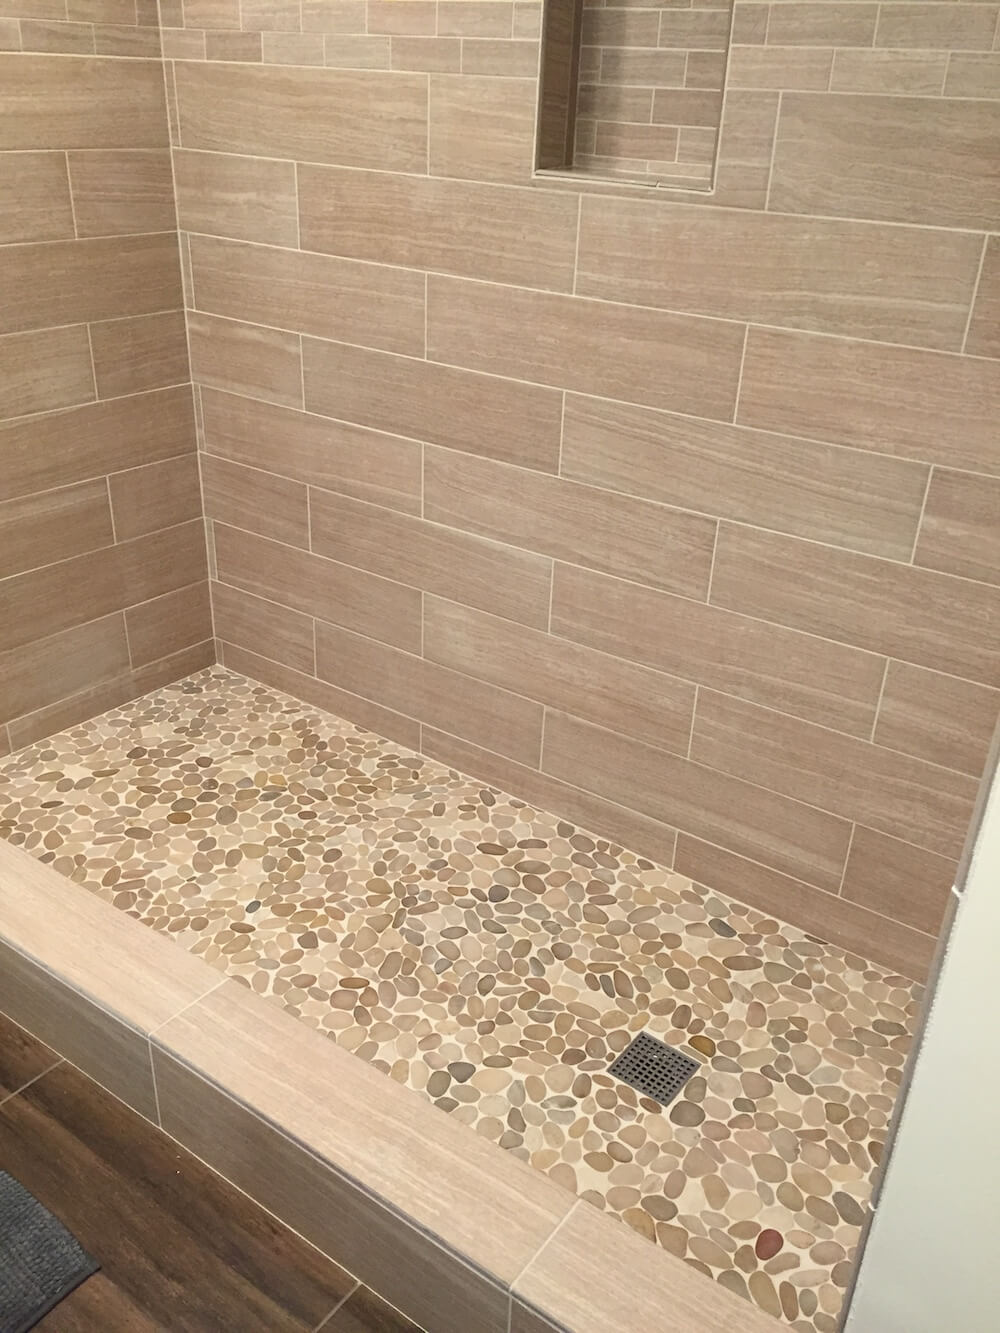 Adding a bathroom cost - Showing Tiling Cost Factors